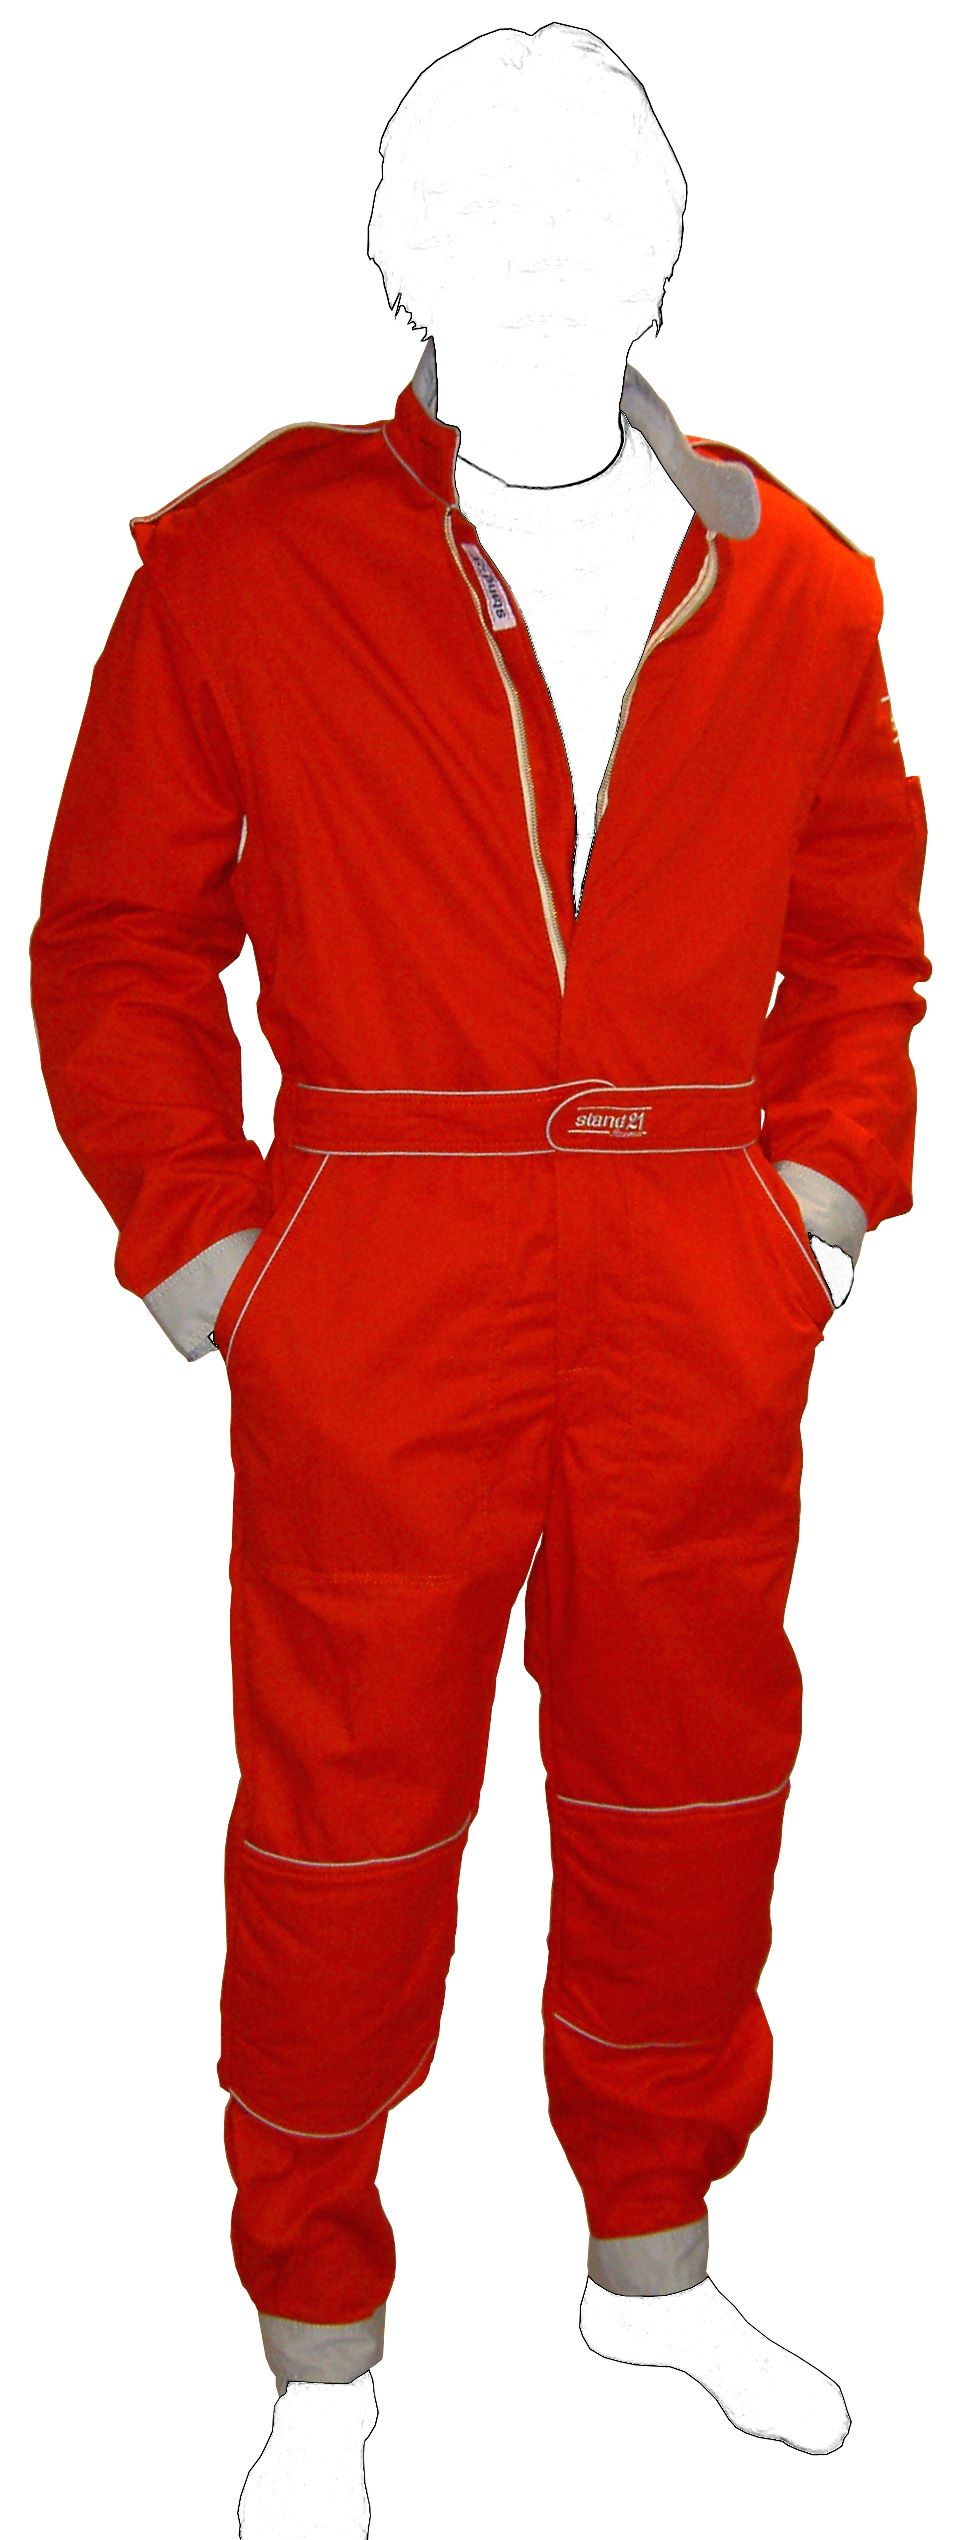 Stock red with grey piping MC2 technical staff suit